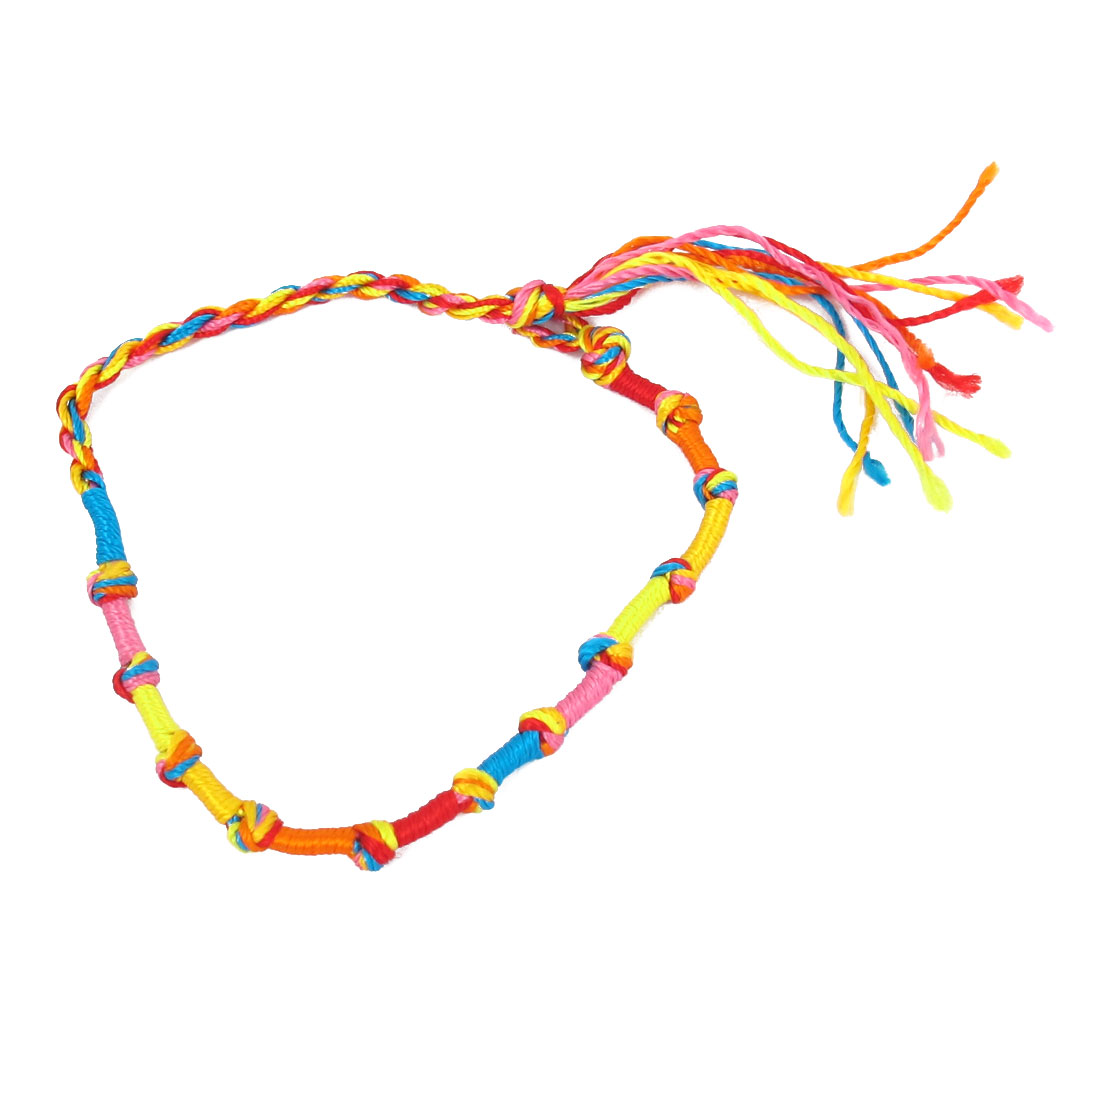 Knot End Multicolor Nylon Lucky Handmade Braid Wrist Bracelet Rope